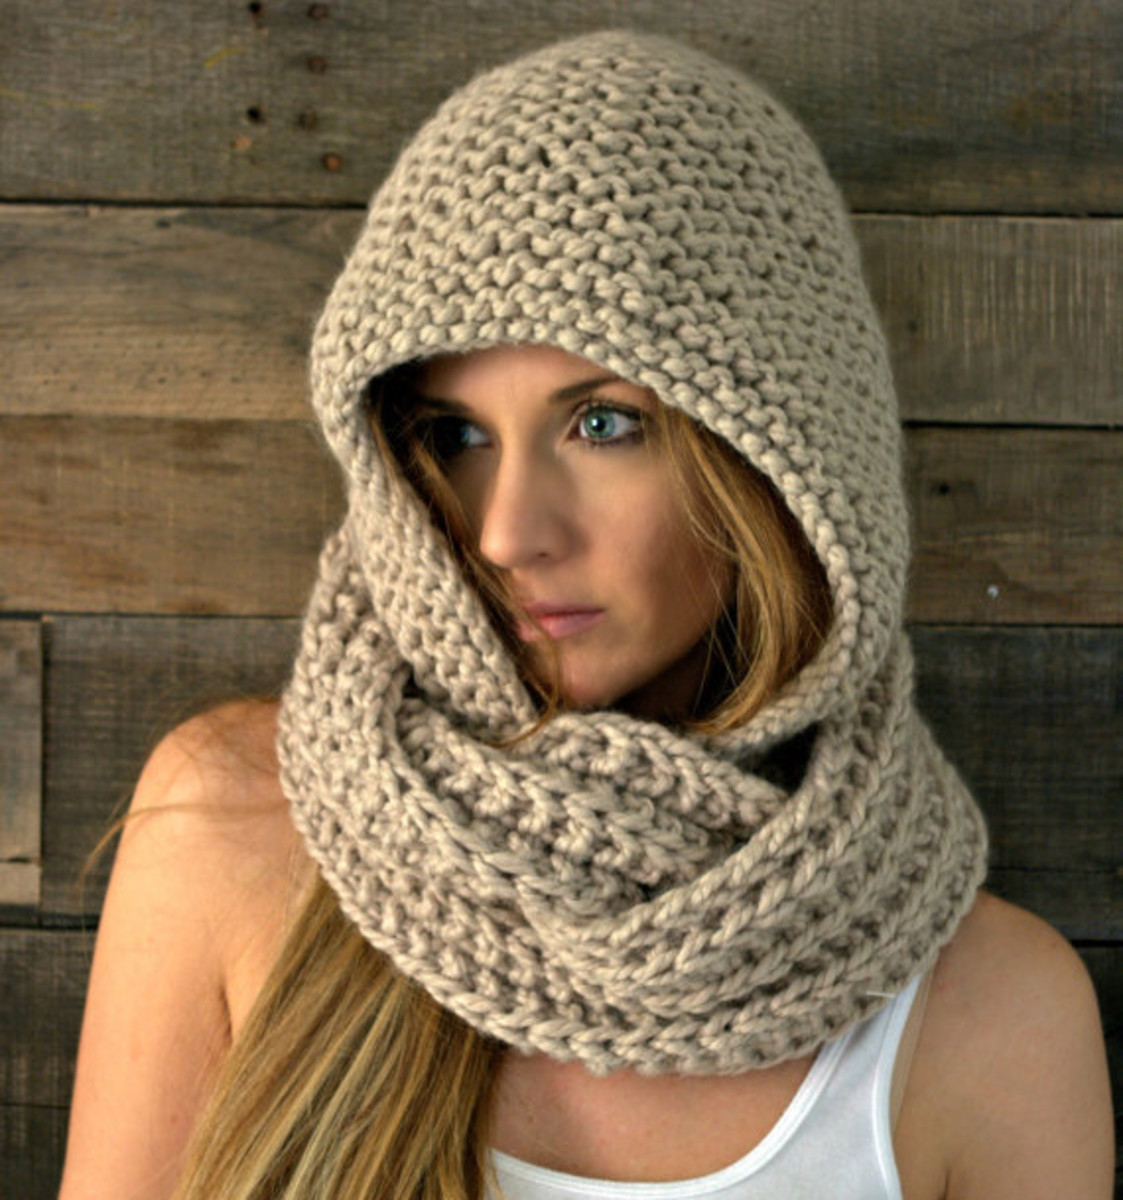 or a hooded scarf